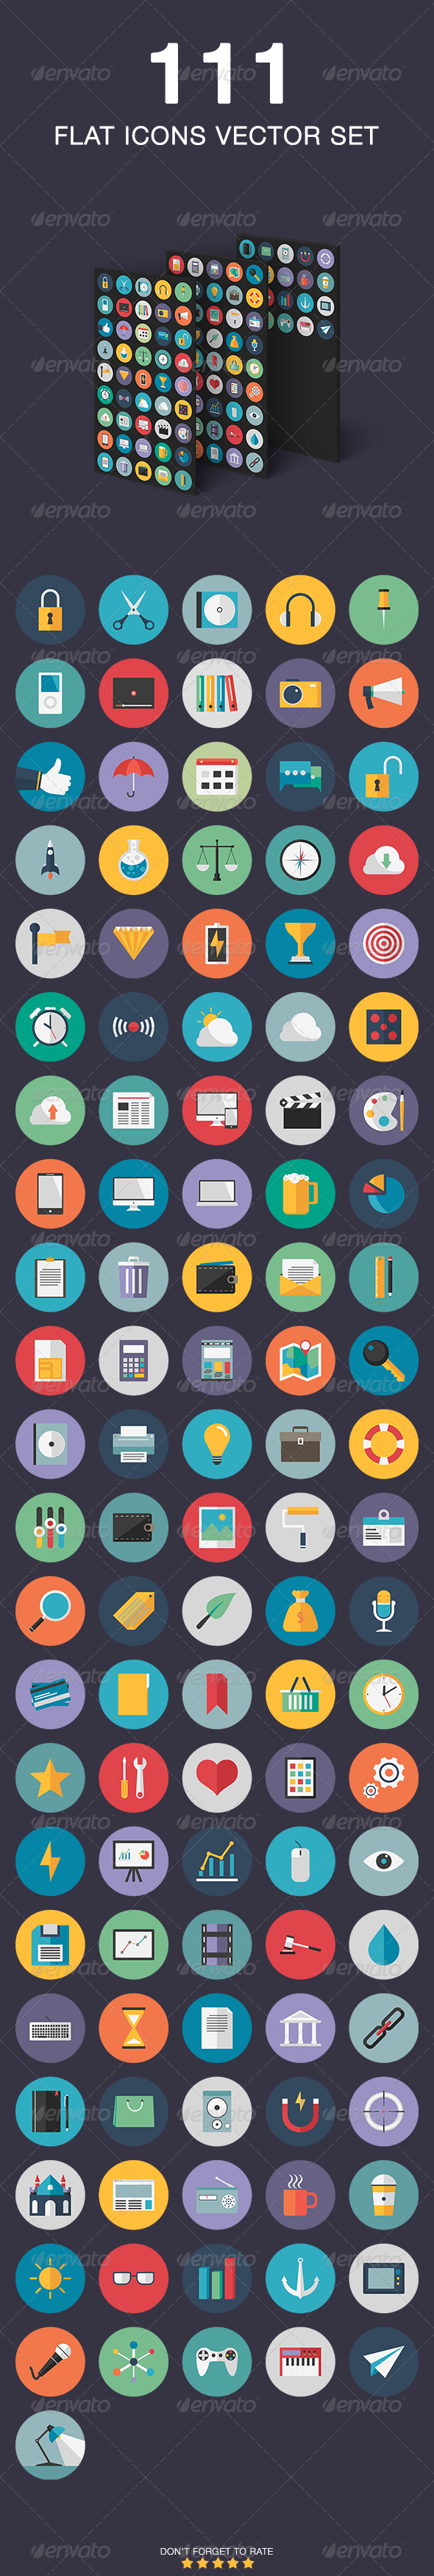 GraphicRiver Flat Icons Vector Set 6826908